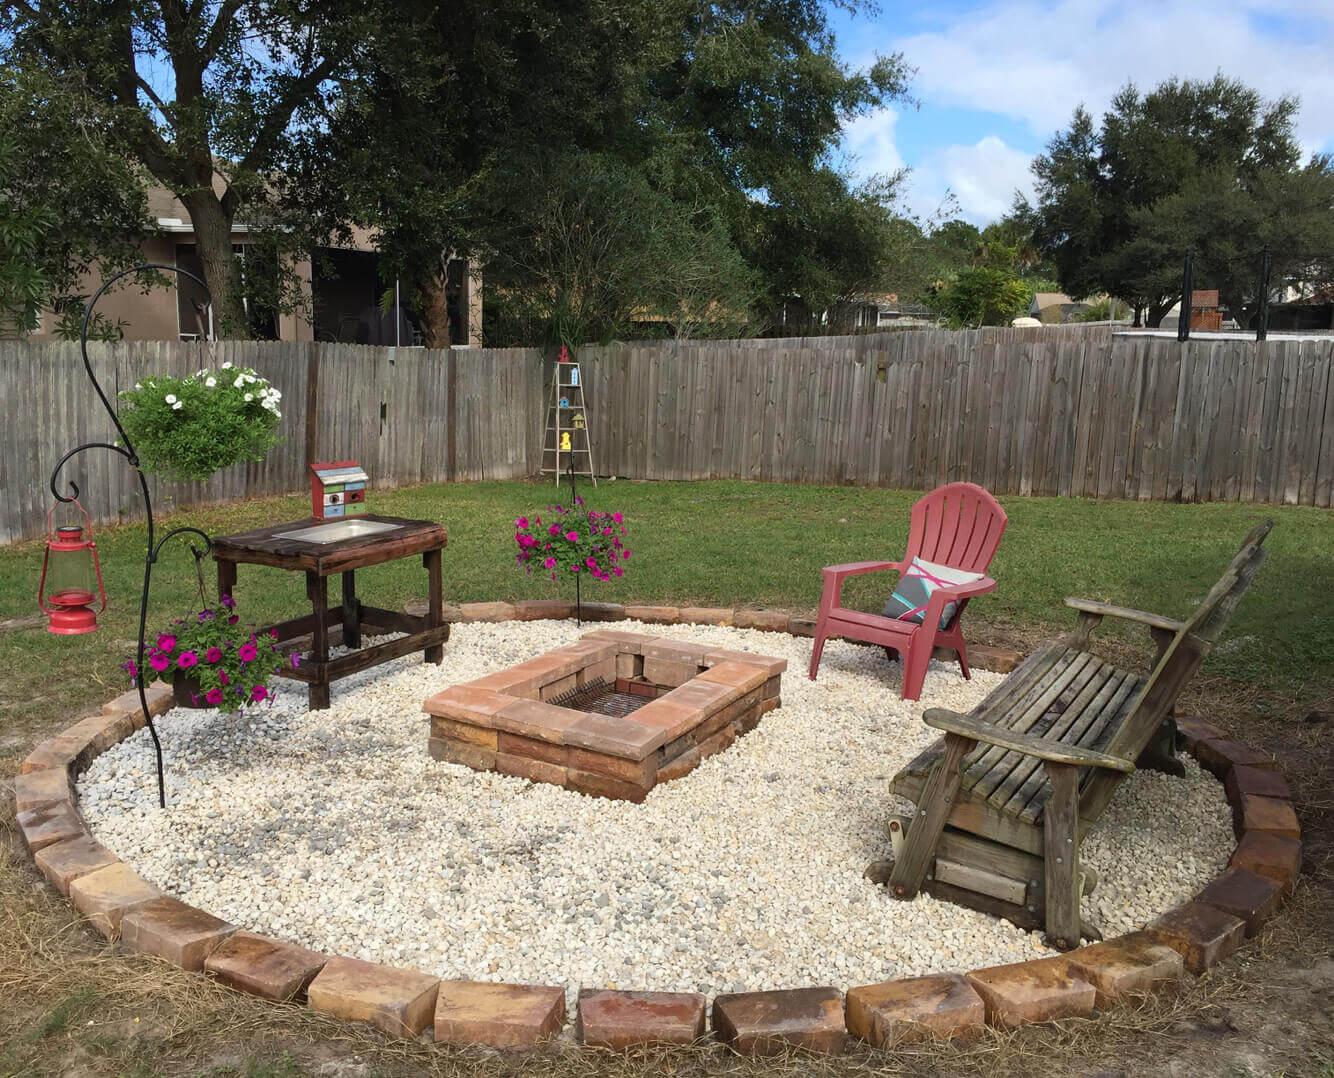 A Stone Grilling Pit for your Backyard   Awesome Firepit Area Ideas For Your Outdoor Activities